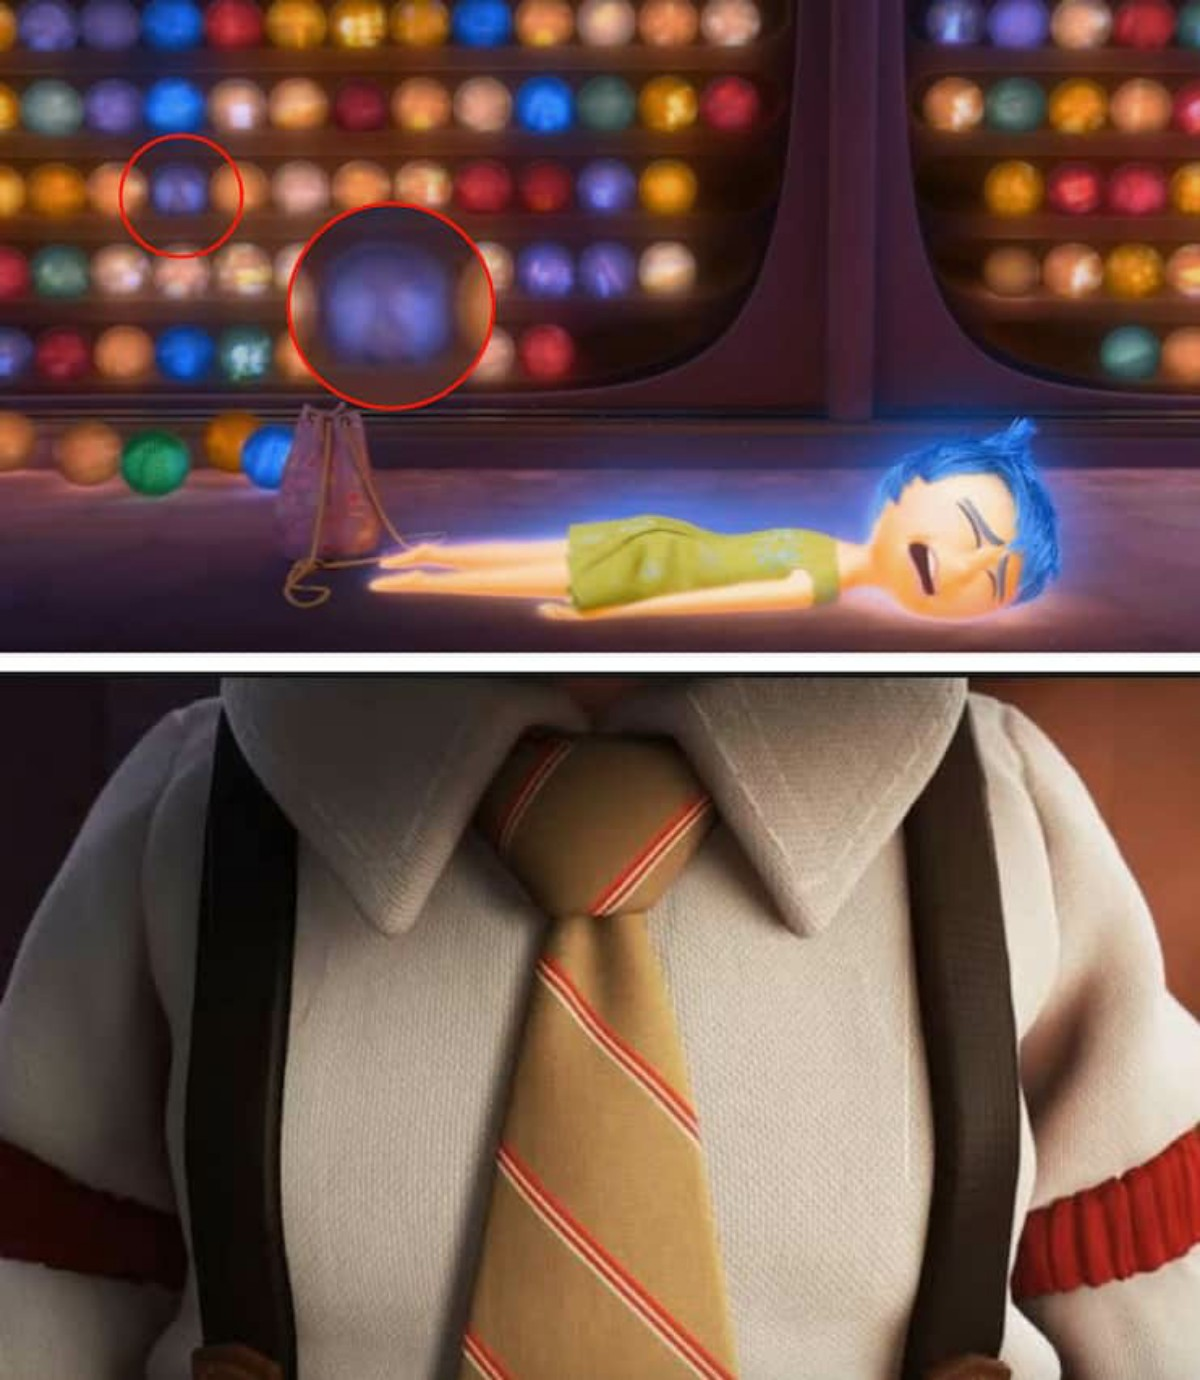 Carl and Ellie in Inside Out